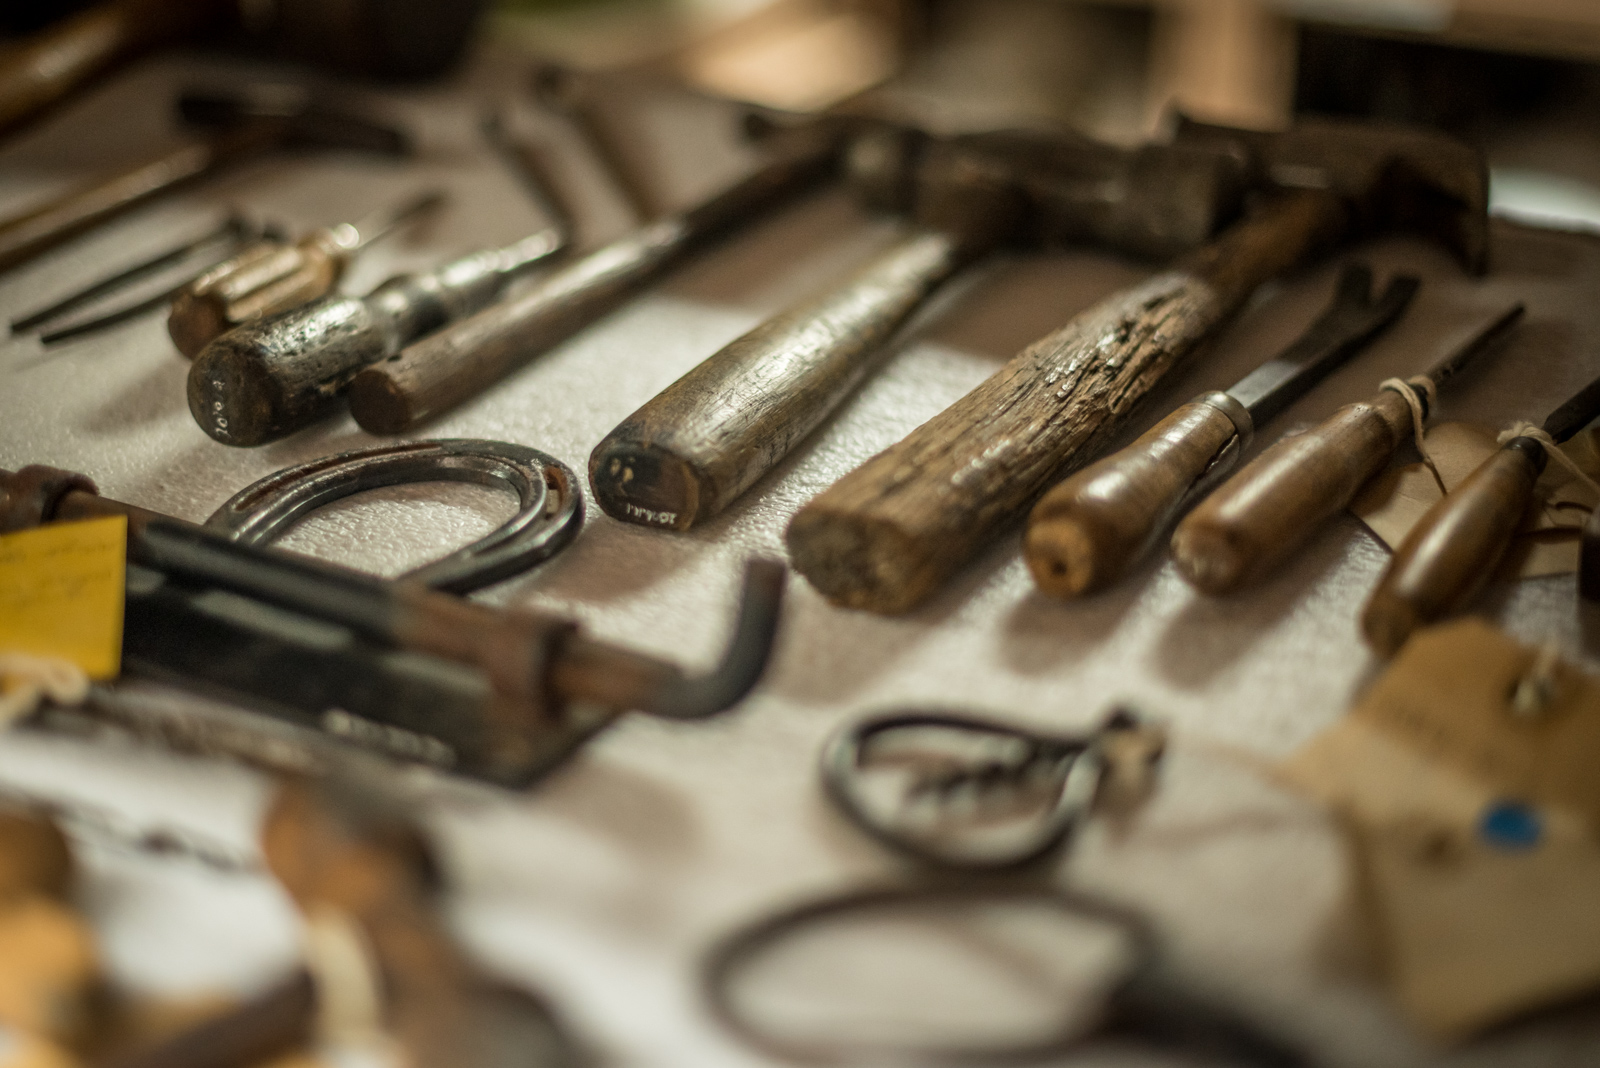 Assortment of hand tools from the Museum's collection